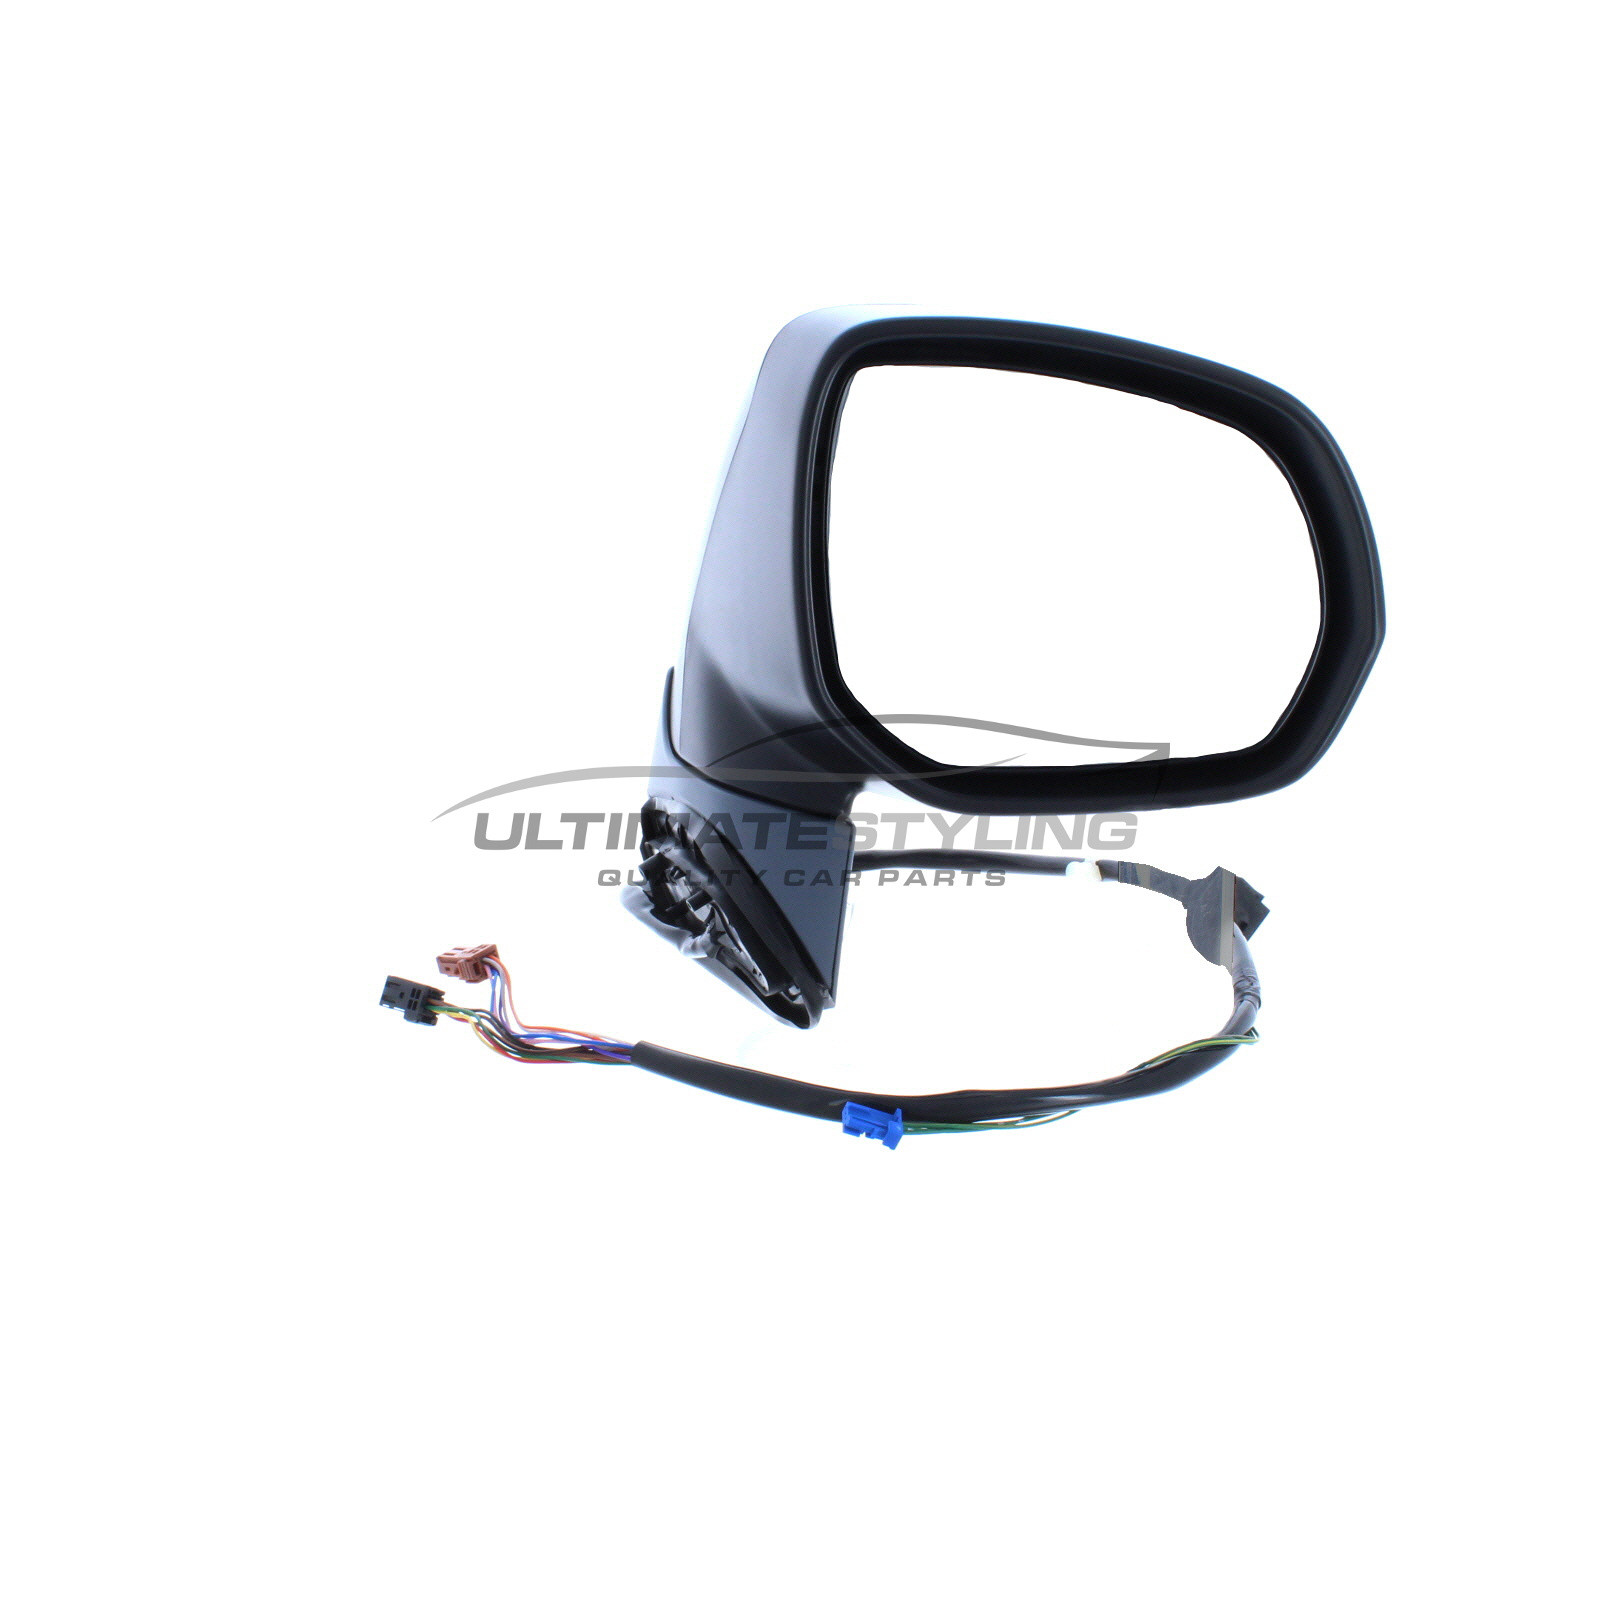 LH Ultimate Styling Replacement Cable None Power Folding Wing Door Mirror With Non-Heated Glass With Black Mirror Cover Cap Side Of Product Passenger Side